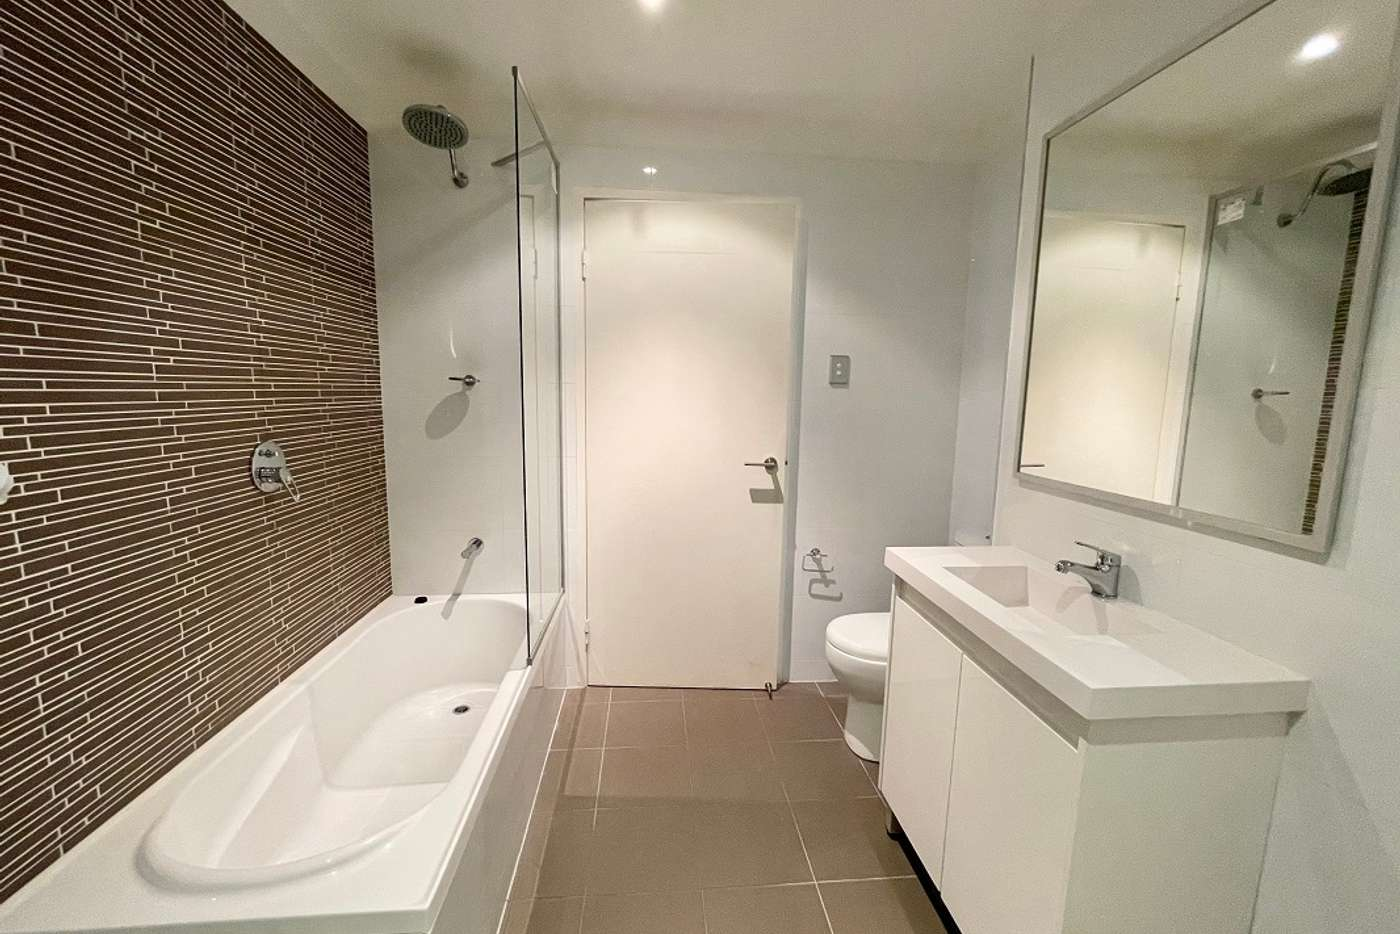 Sixth view of Homely apartment listing, 15/79-87 Beaconsfield Street, Silverwater NSW 2128